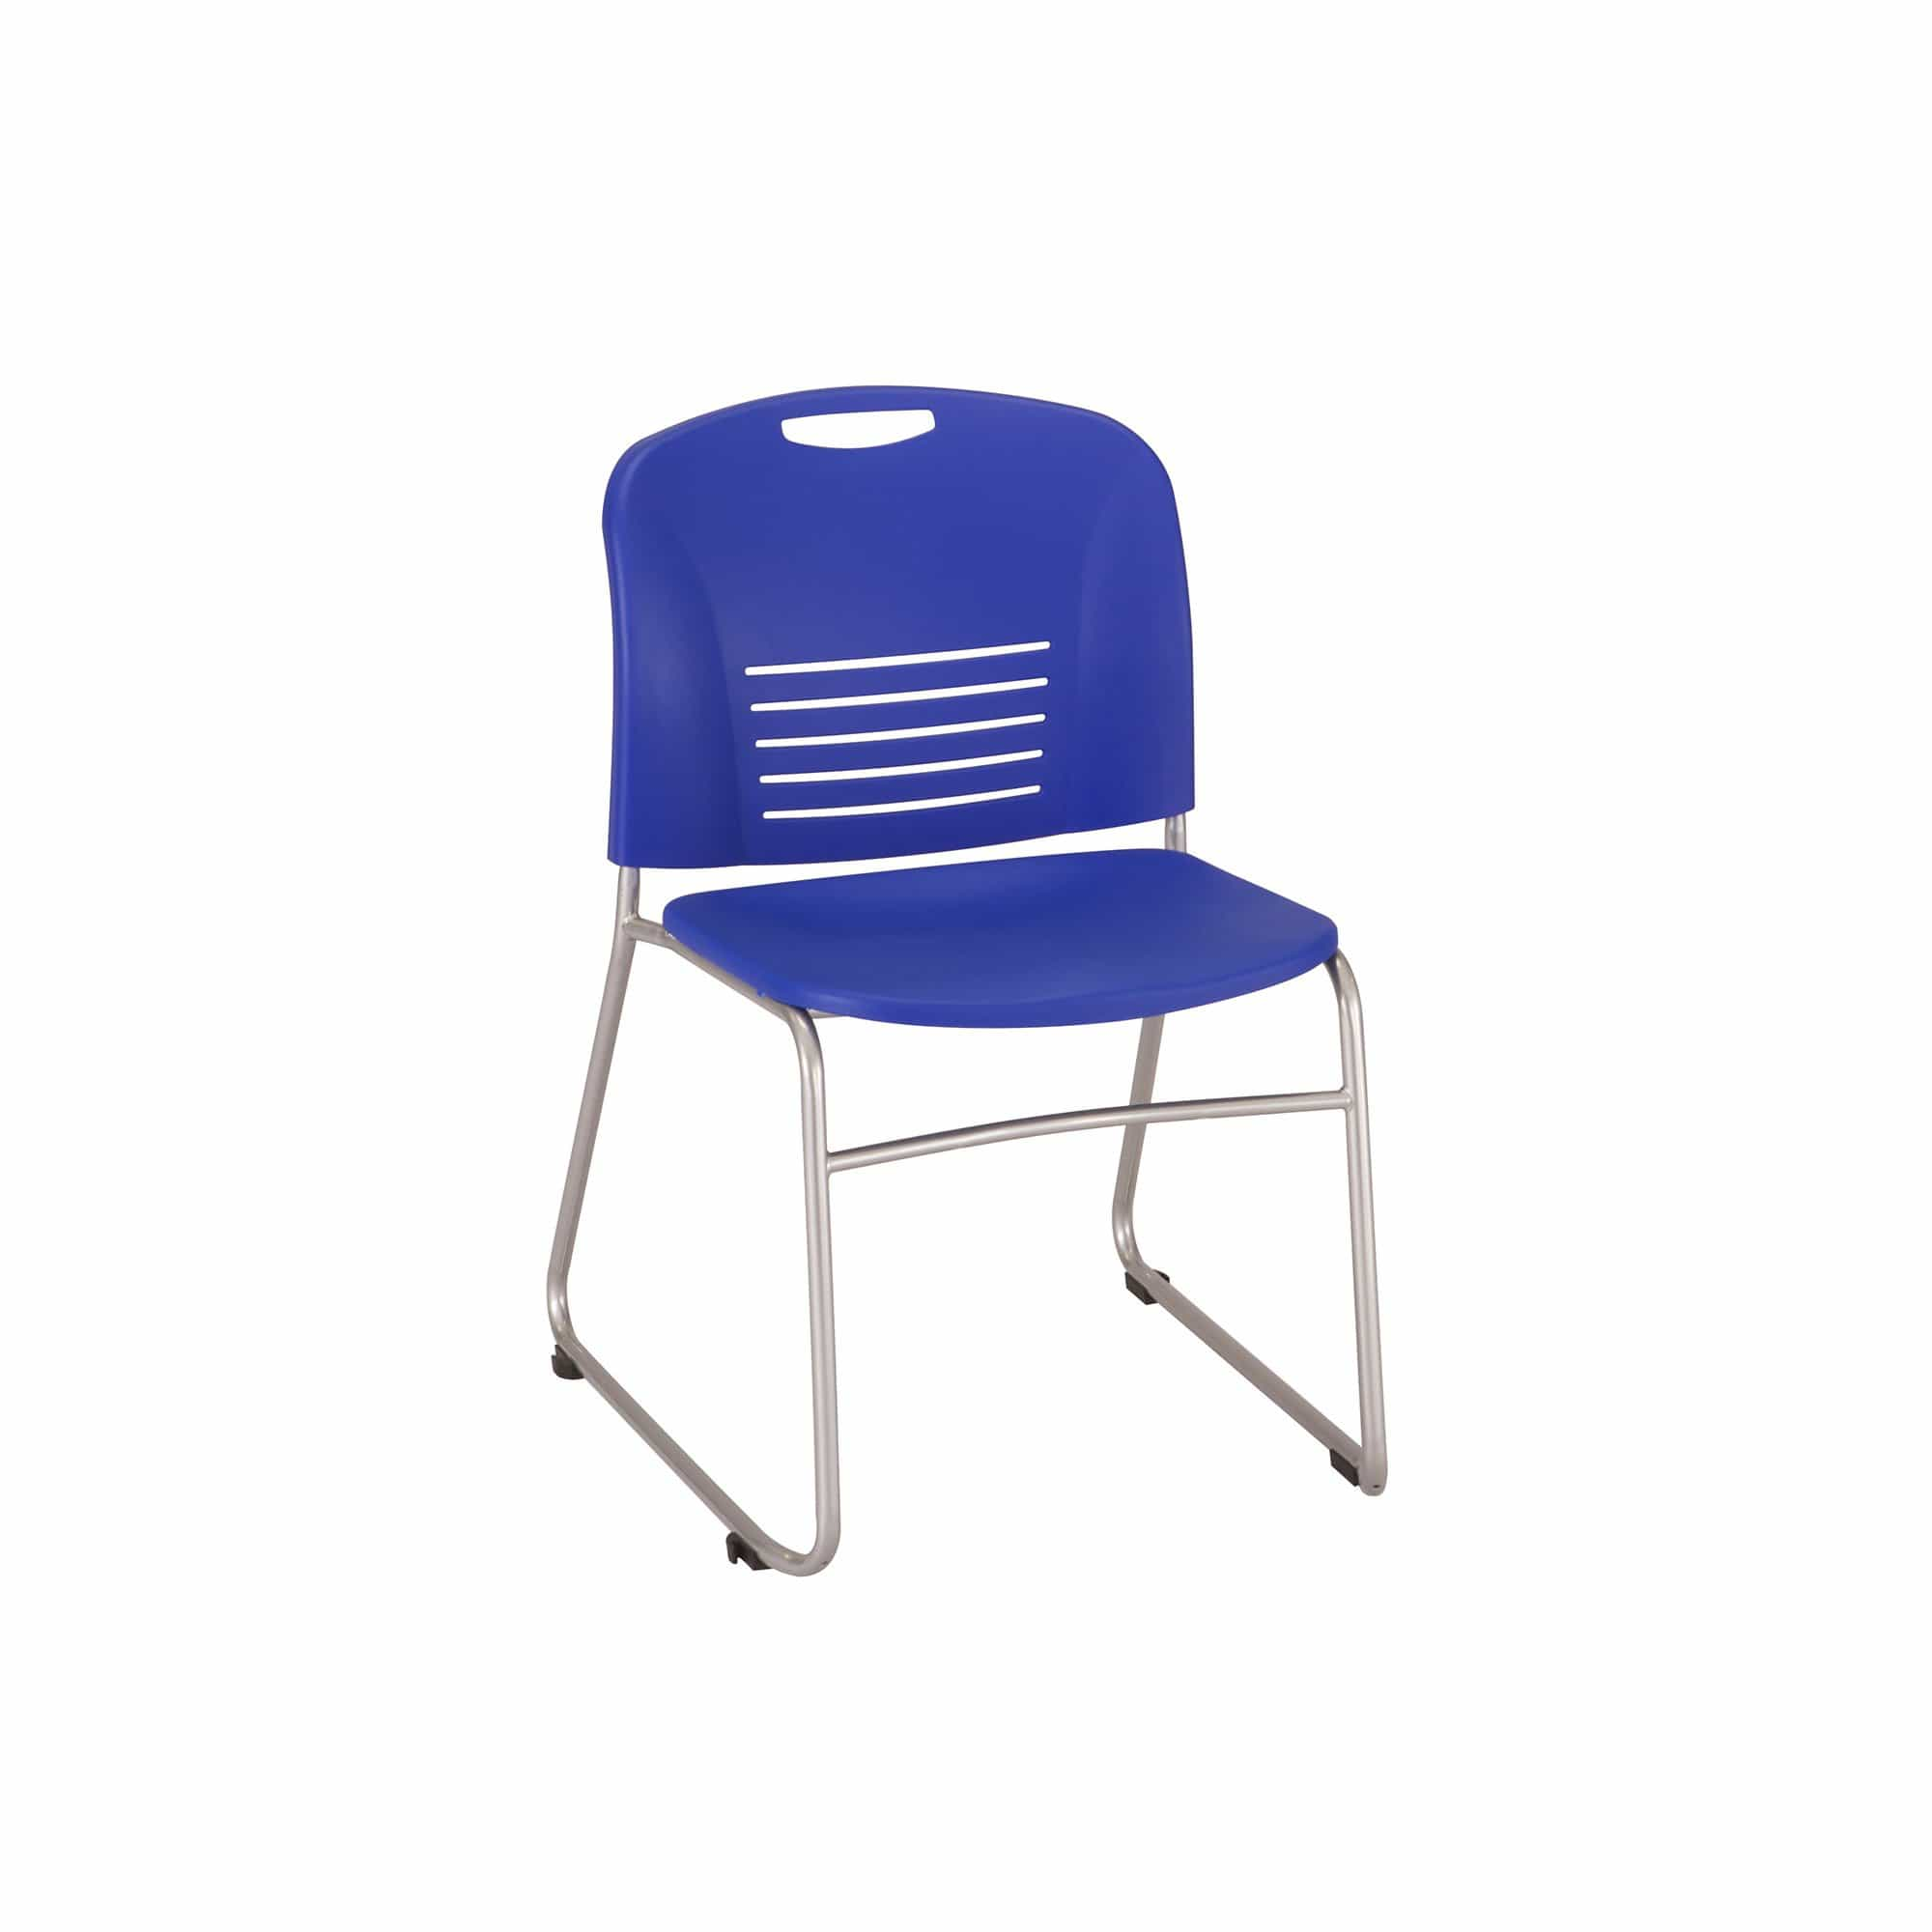 bedinhome - 4292BU Vy™ Restaurant Furniture Sled Base Leg Frame Plastic Stack Blue Chair With Small Scale Aesthetics (Qty. 2) - Safco - Stack Chair